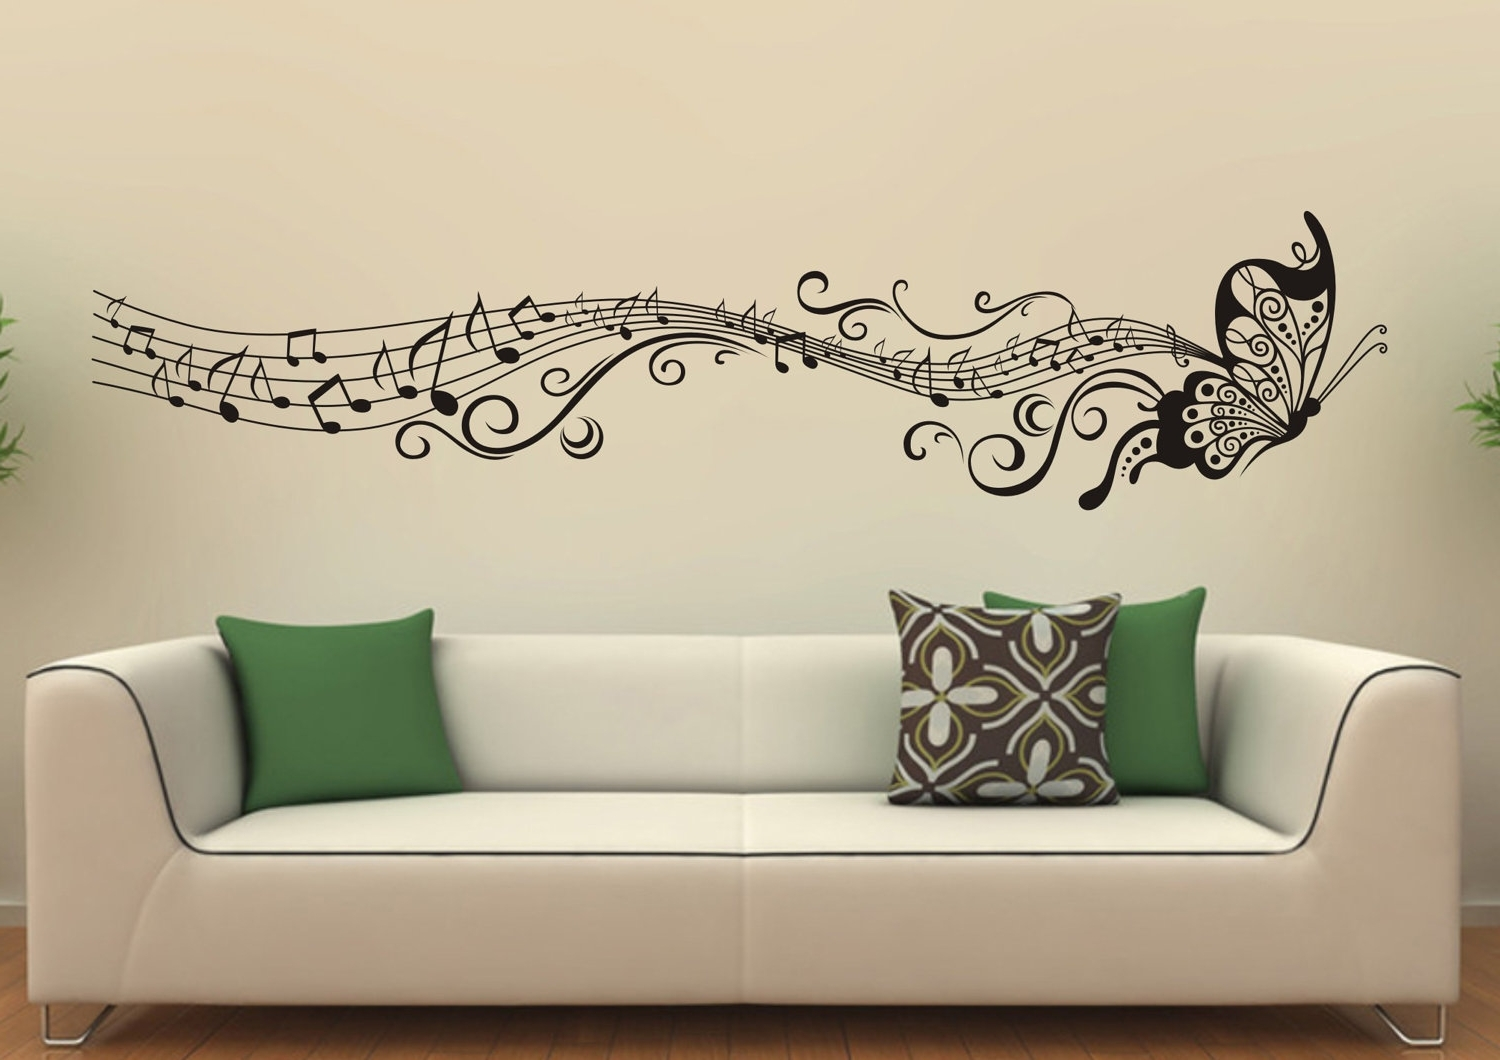 Home Wall Art Inside Current Wall Art Home Decor Simple With Photos Of Wall Decoration In Design (View 8 of 15)